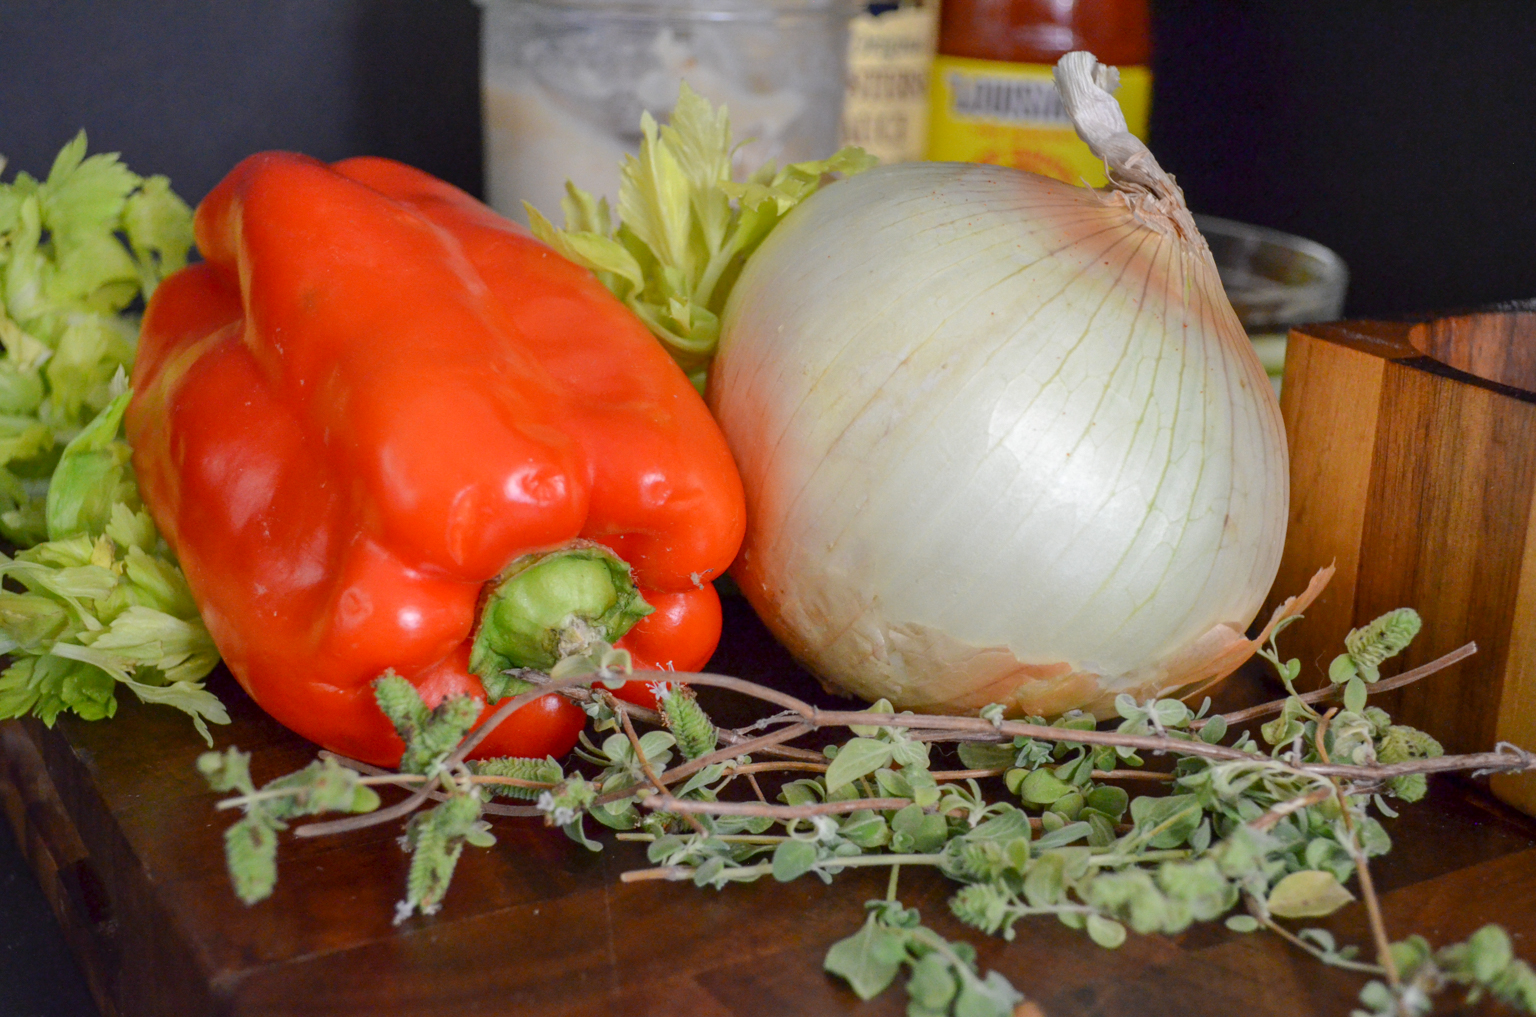 The Trinity - bell pepper, onion, and celery.